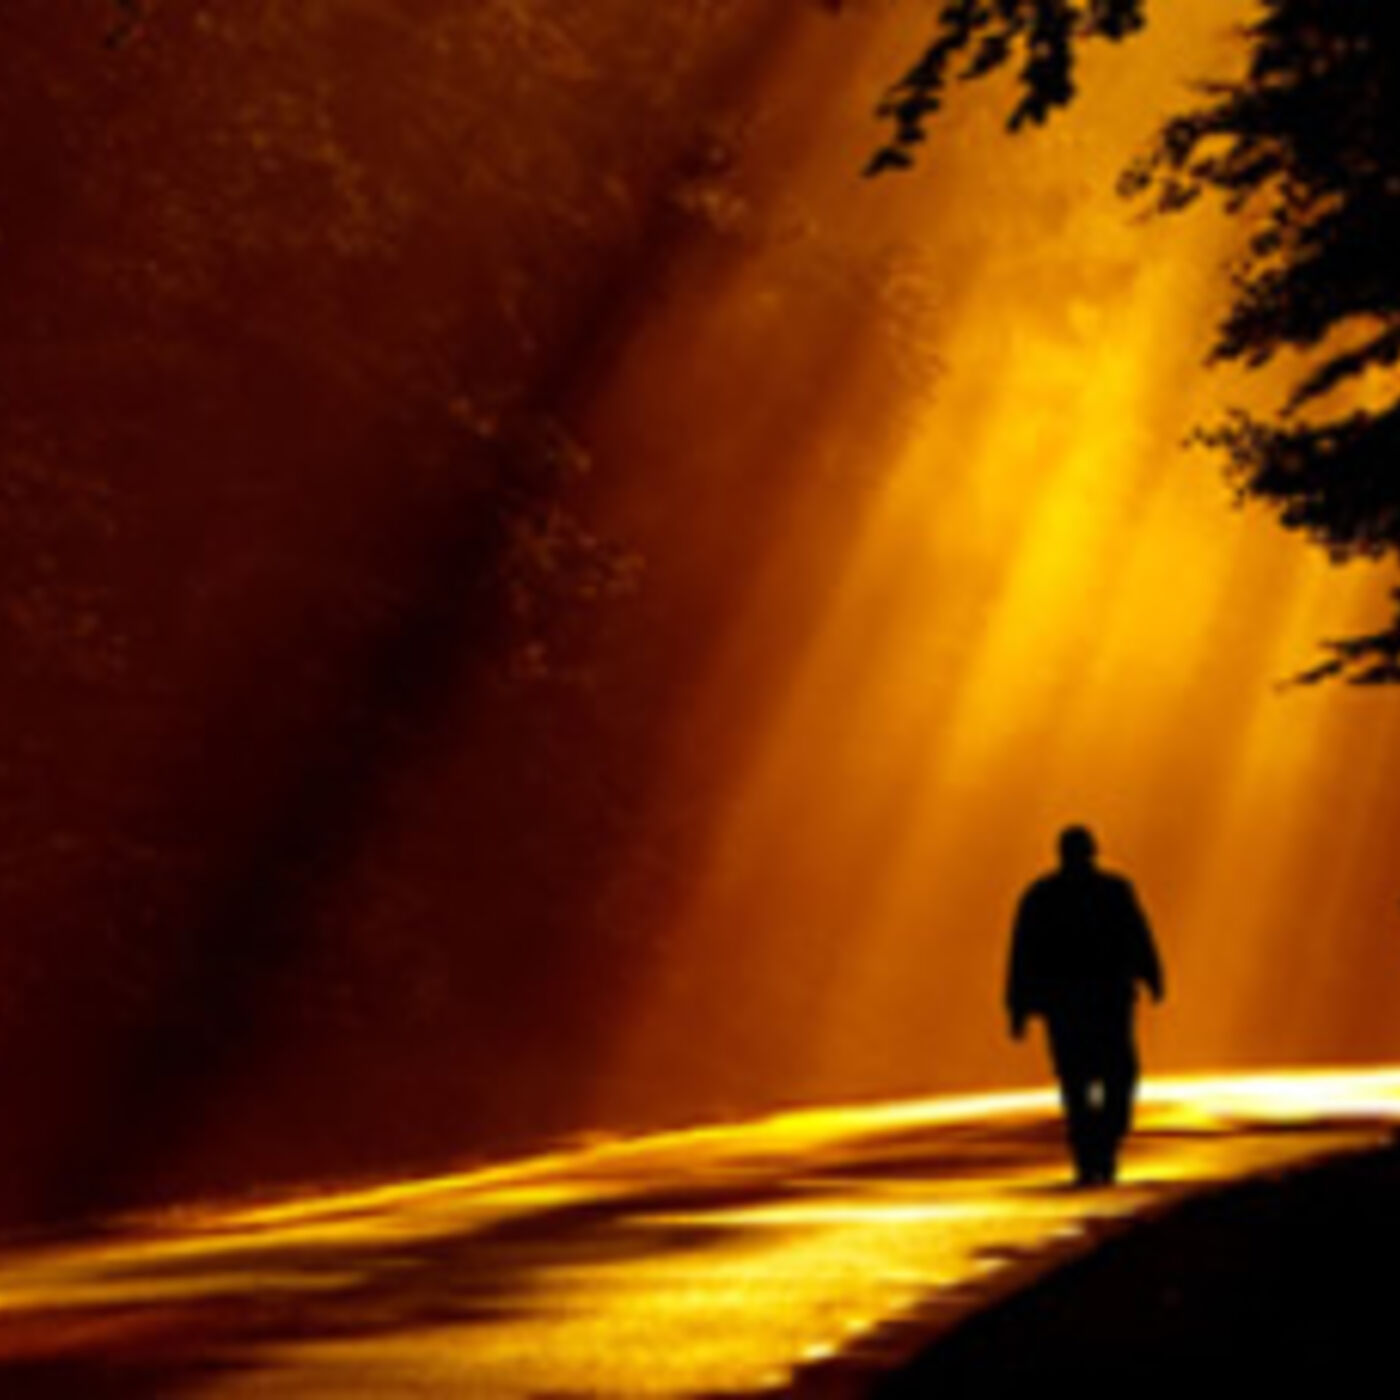 Episode 366 - The Golden Path in Life